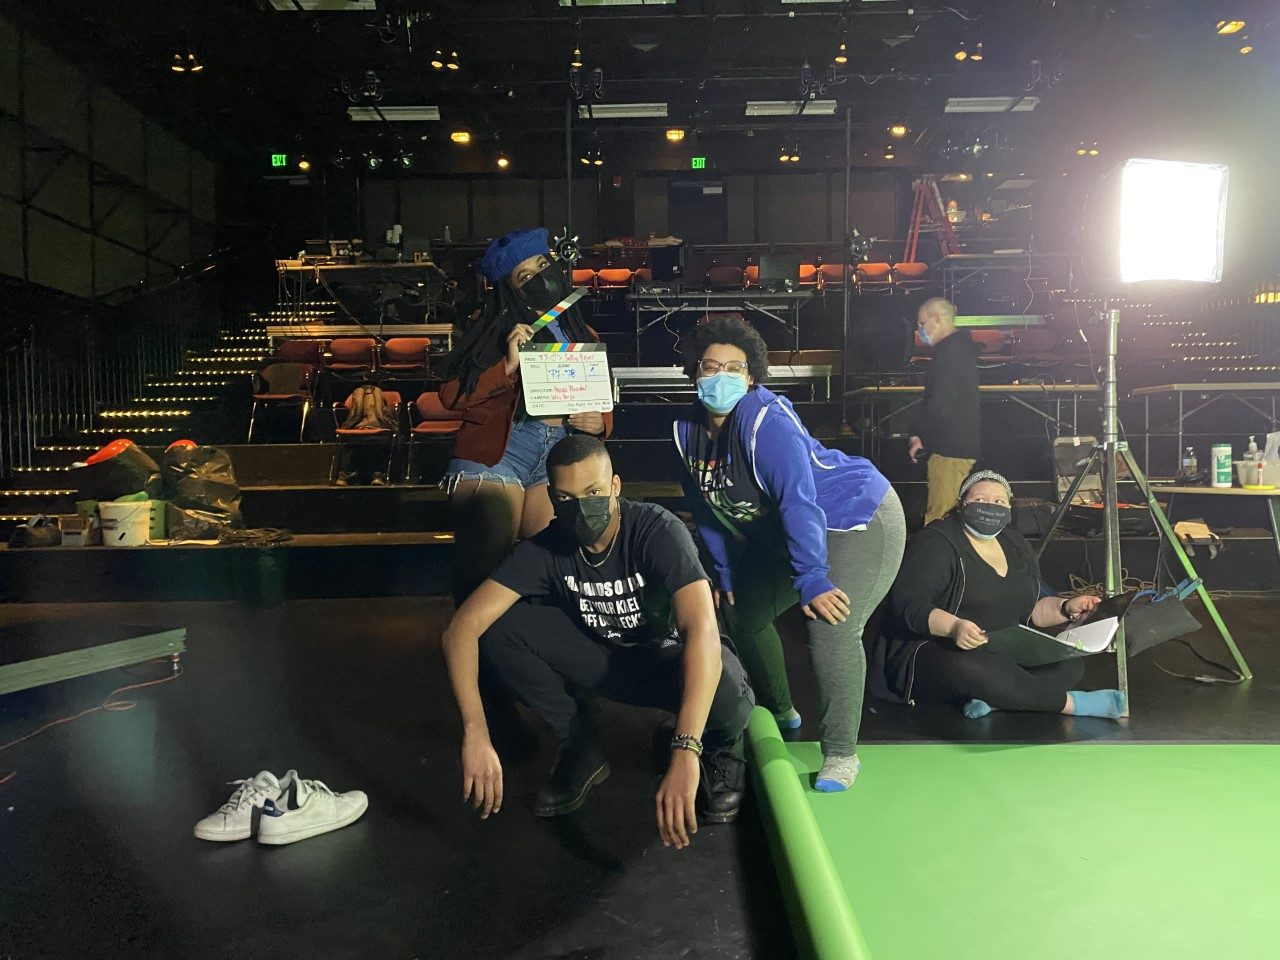 A group of artists pose while filming on a set on stage